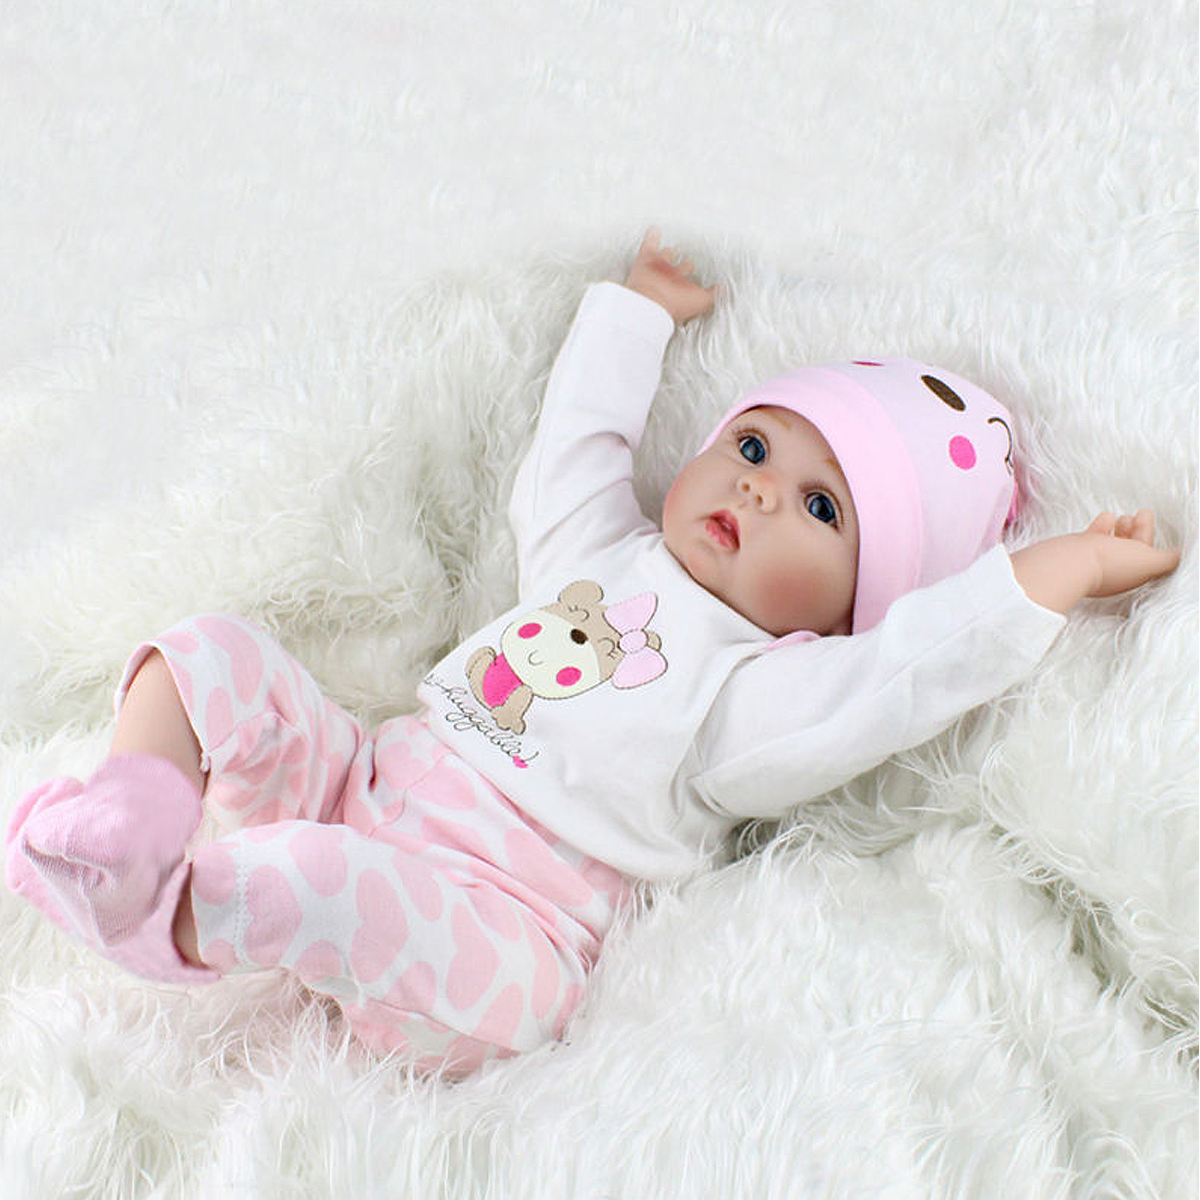 Reborn Baby Dolls Vinyl Silicone Belly Doll Like Real Life Baby Birthday Gift